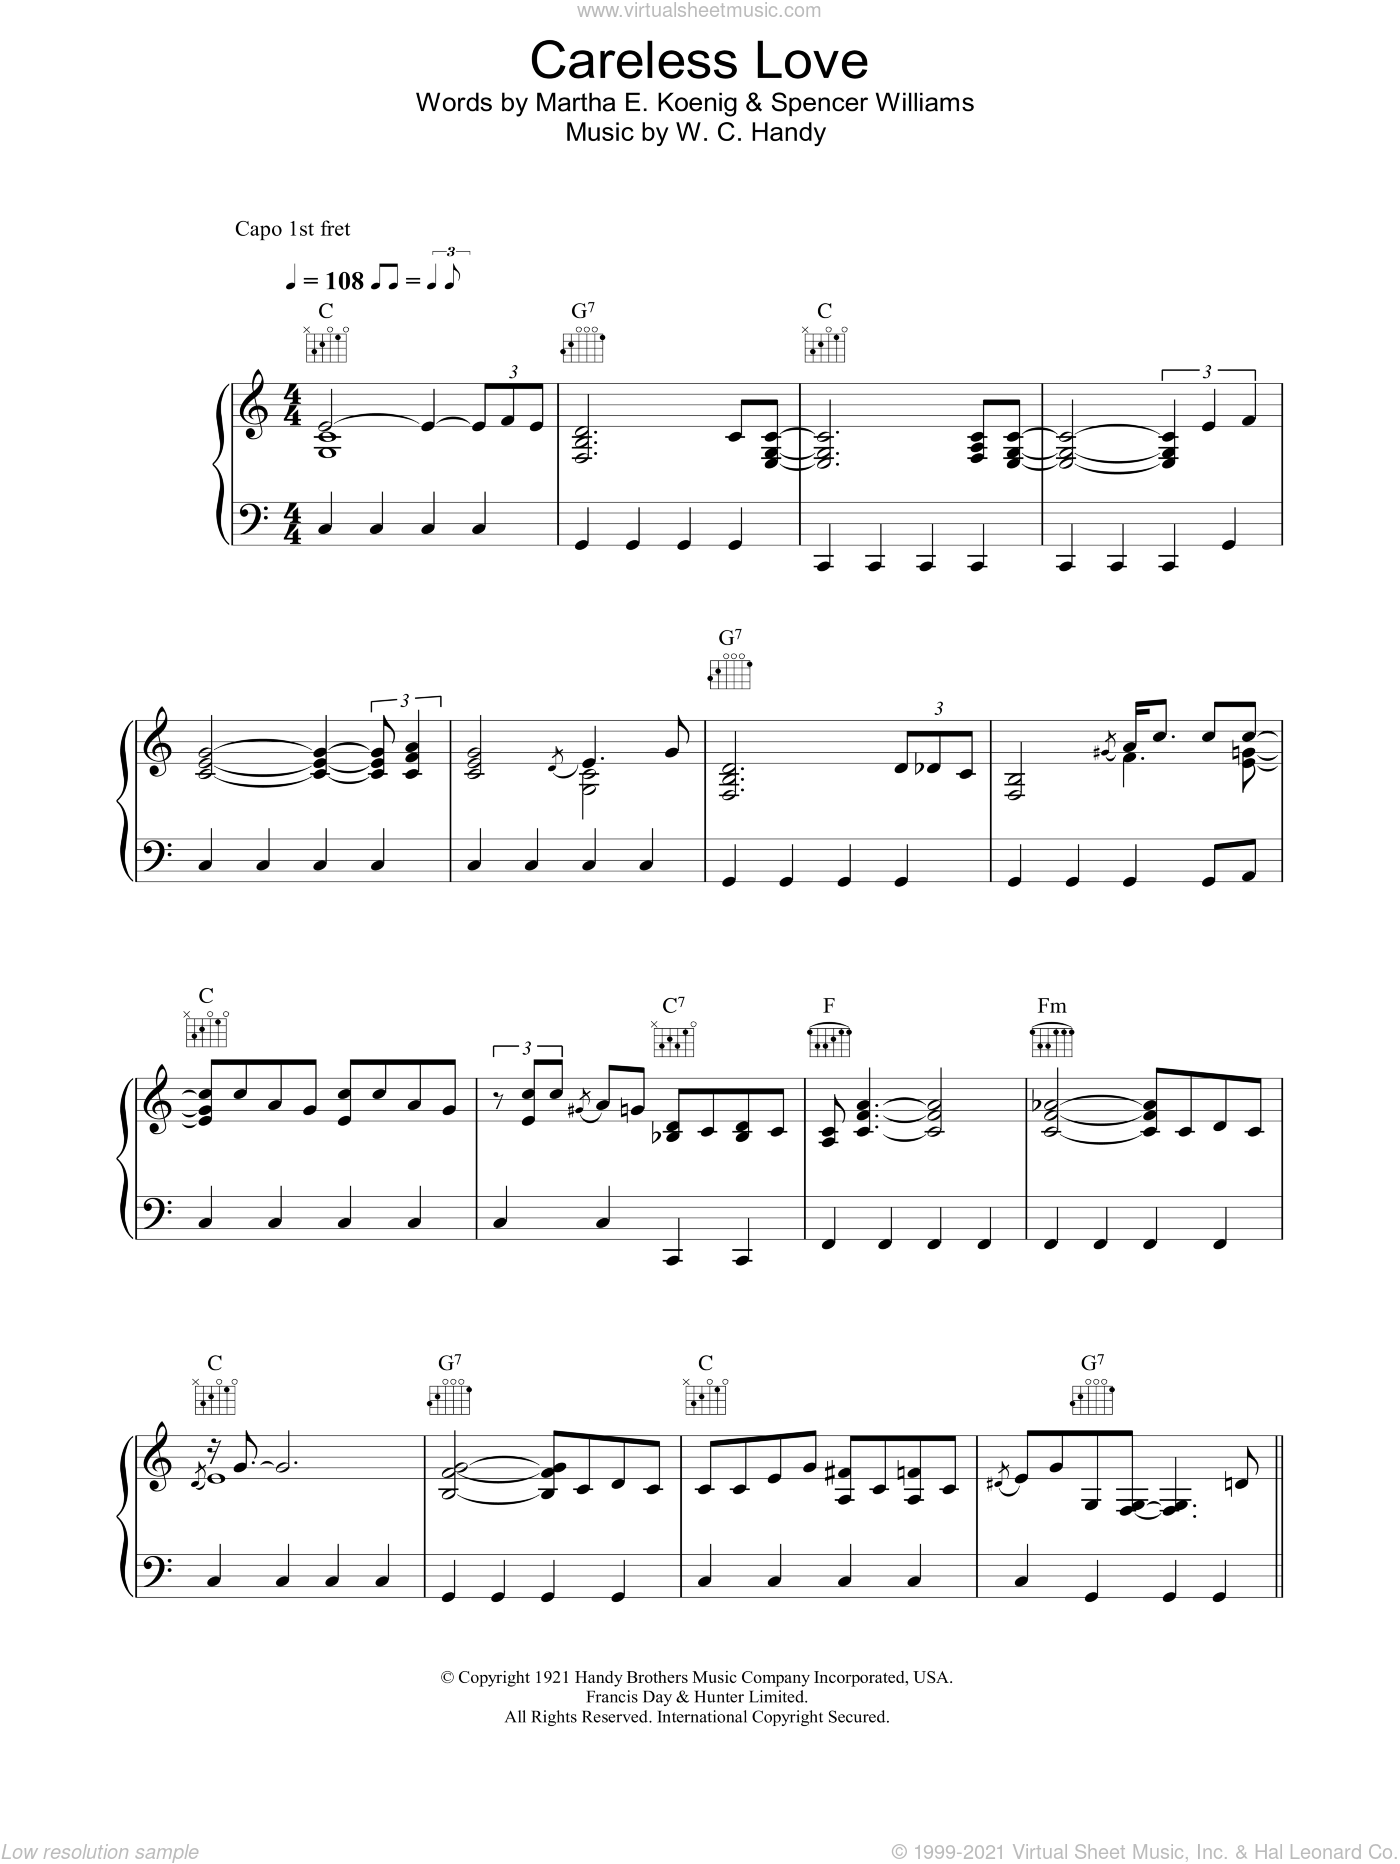 Careless Love sheet music for voice, piano or guitar by Madeleine Peyroux, Martha E. Koenig, Spencer Williams and W.C. Handy, intermediate skill level